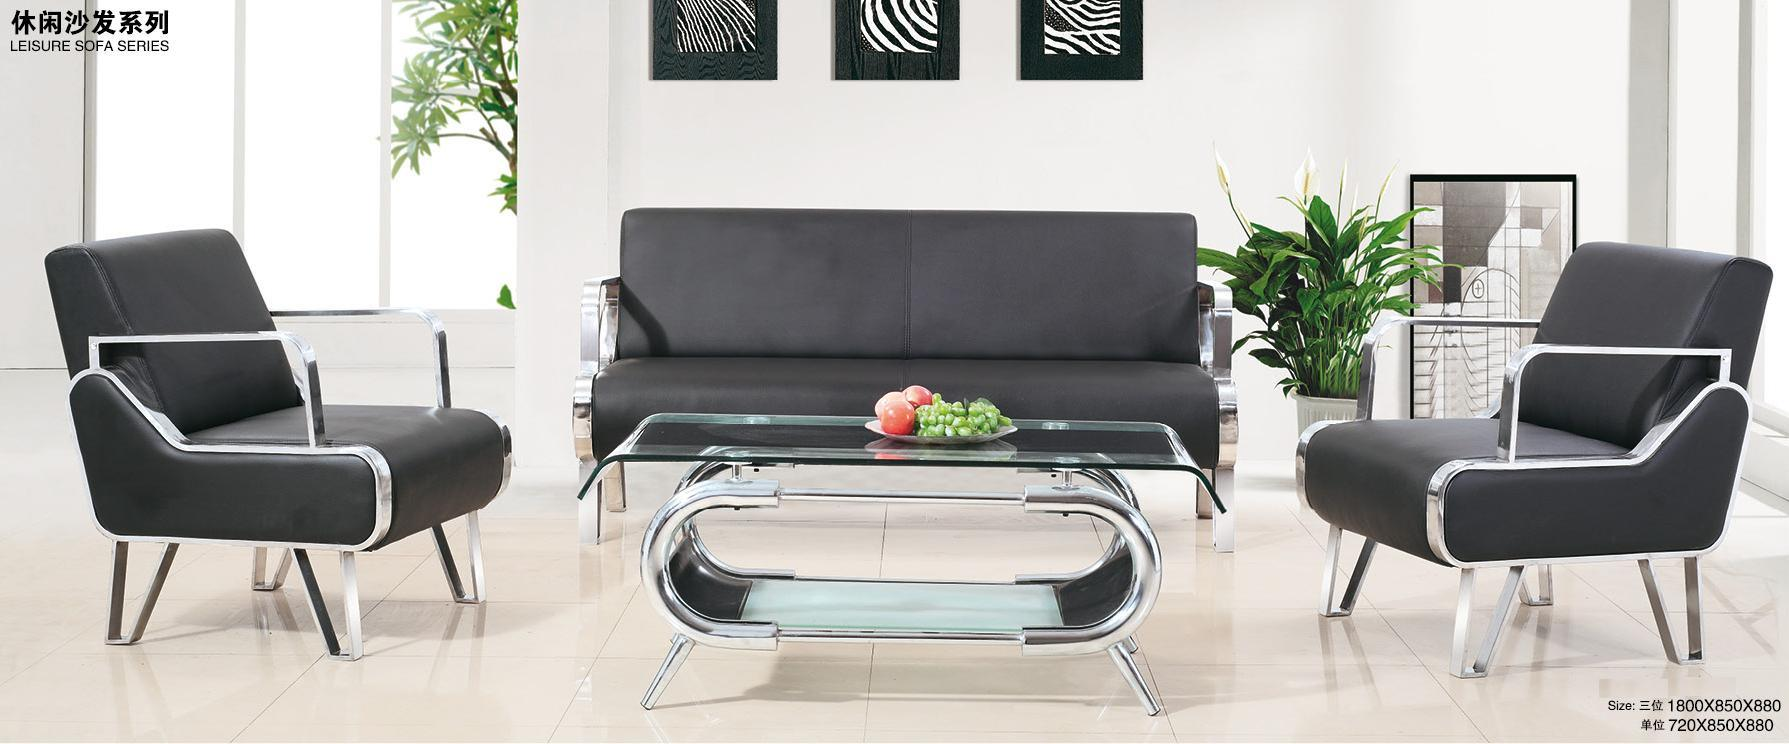 Urban Sofa Banken Bank Sofa Free Siesta Sofa Bed In White From Milan Direct Cheap